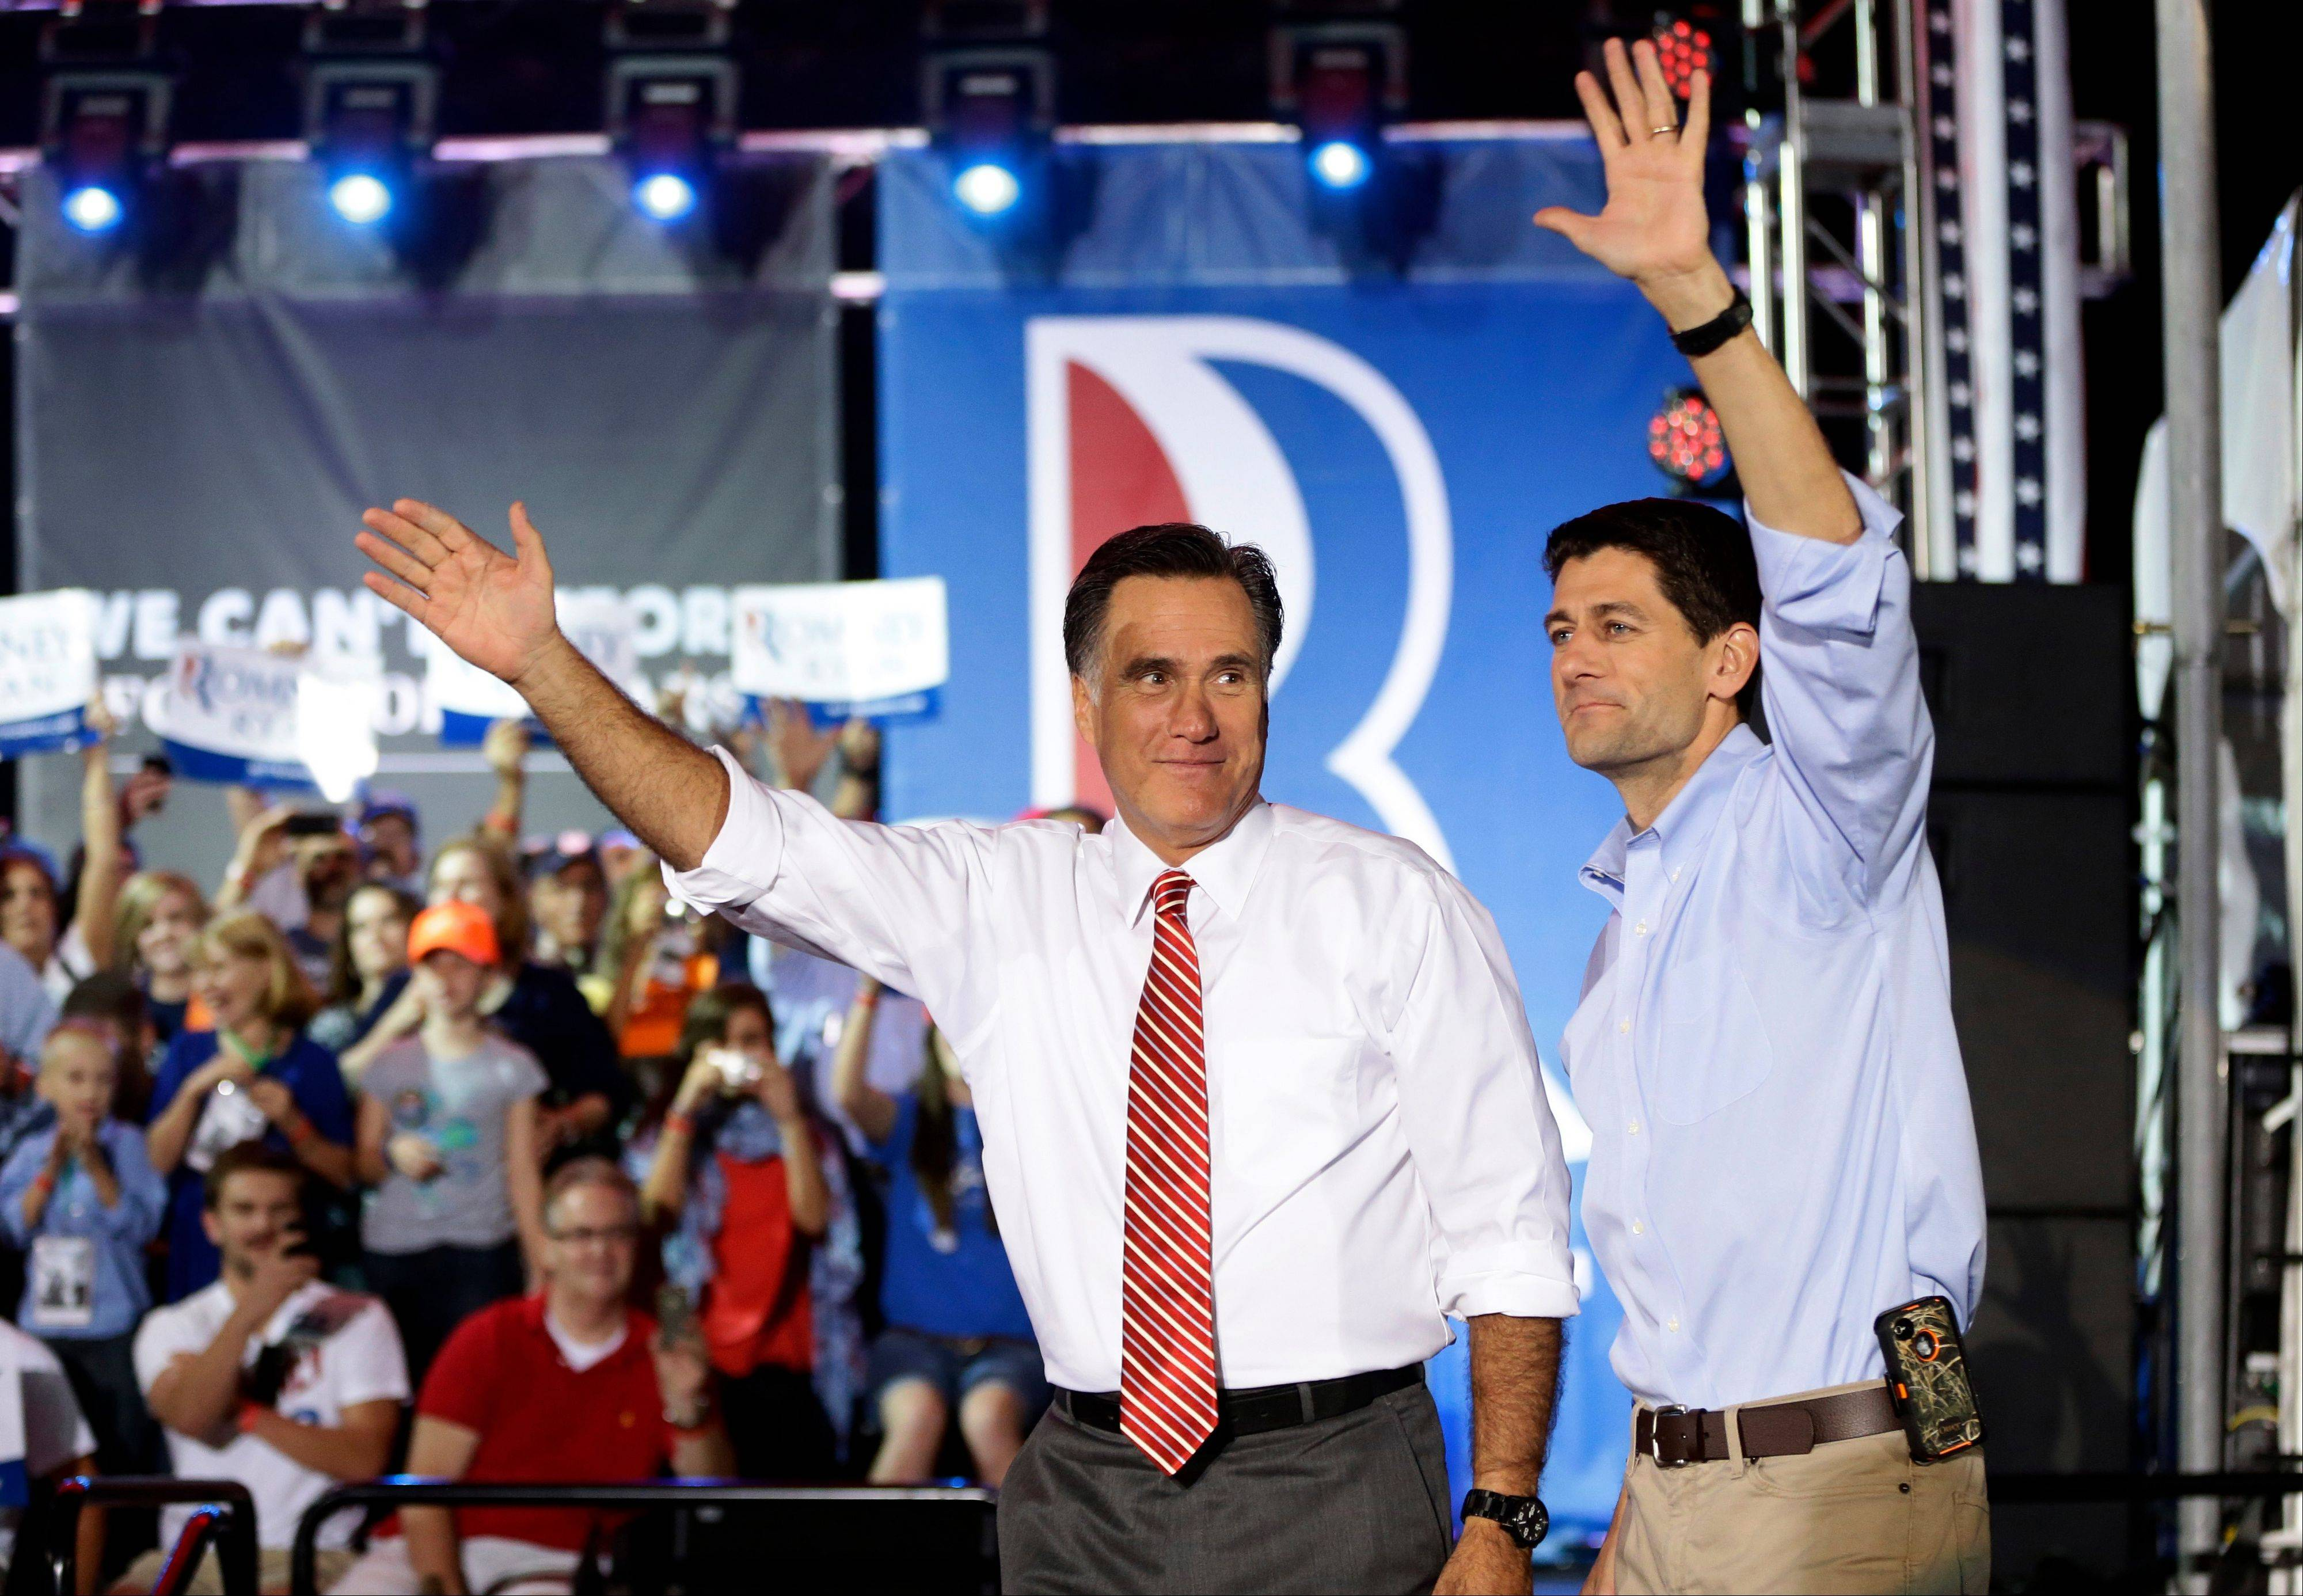 Republican presidential candidate and former Massachusetts Gov. Mitt Romney campaigns with running mate Rep. Paul Ryan, a Wisconsin Republican, in Fishersville, Va.